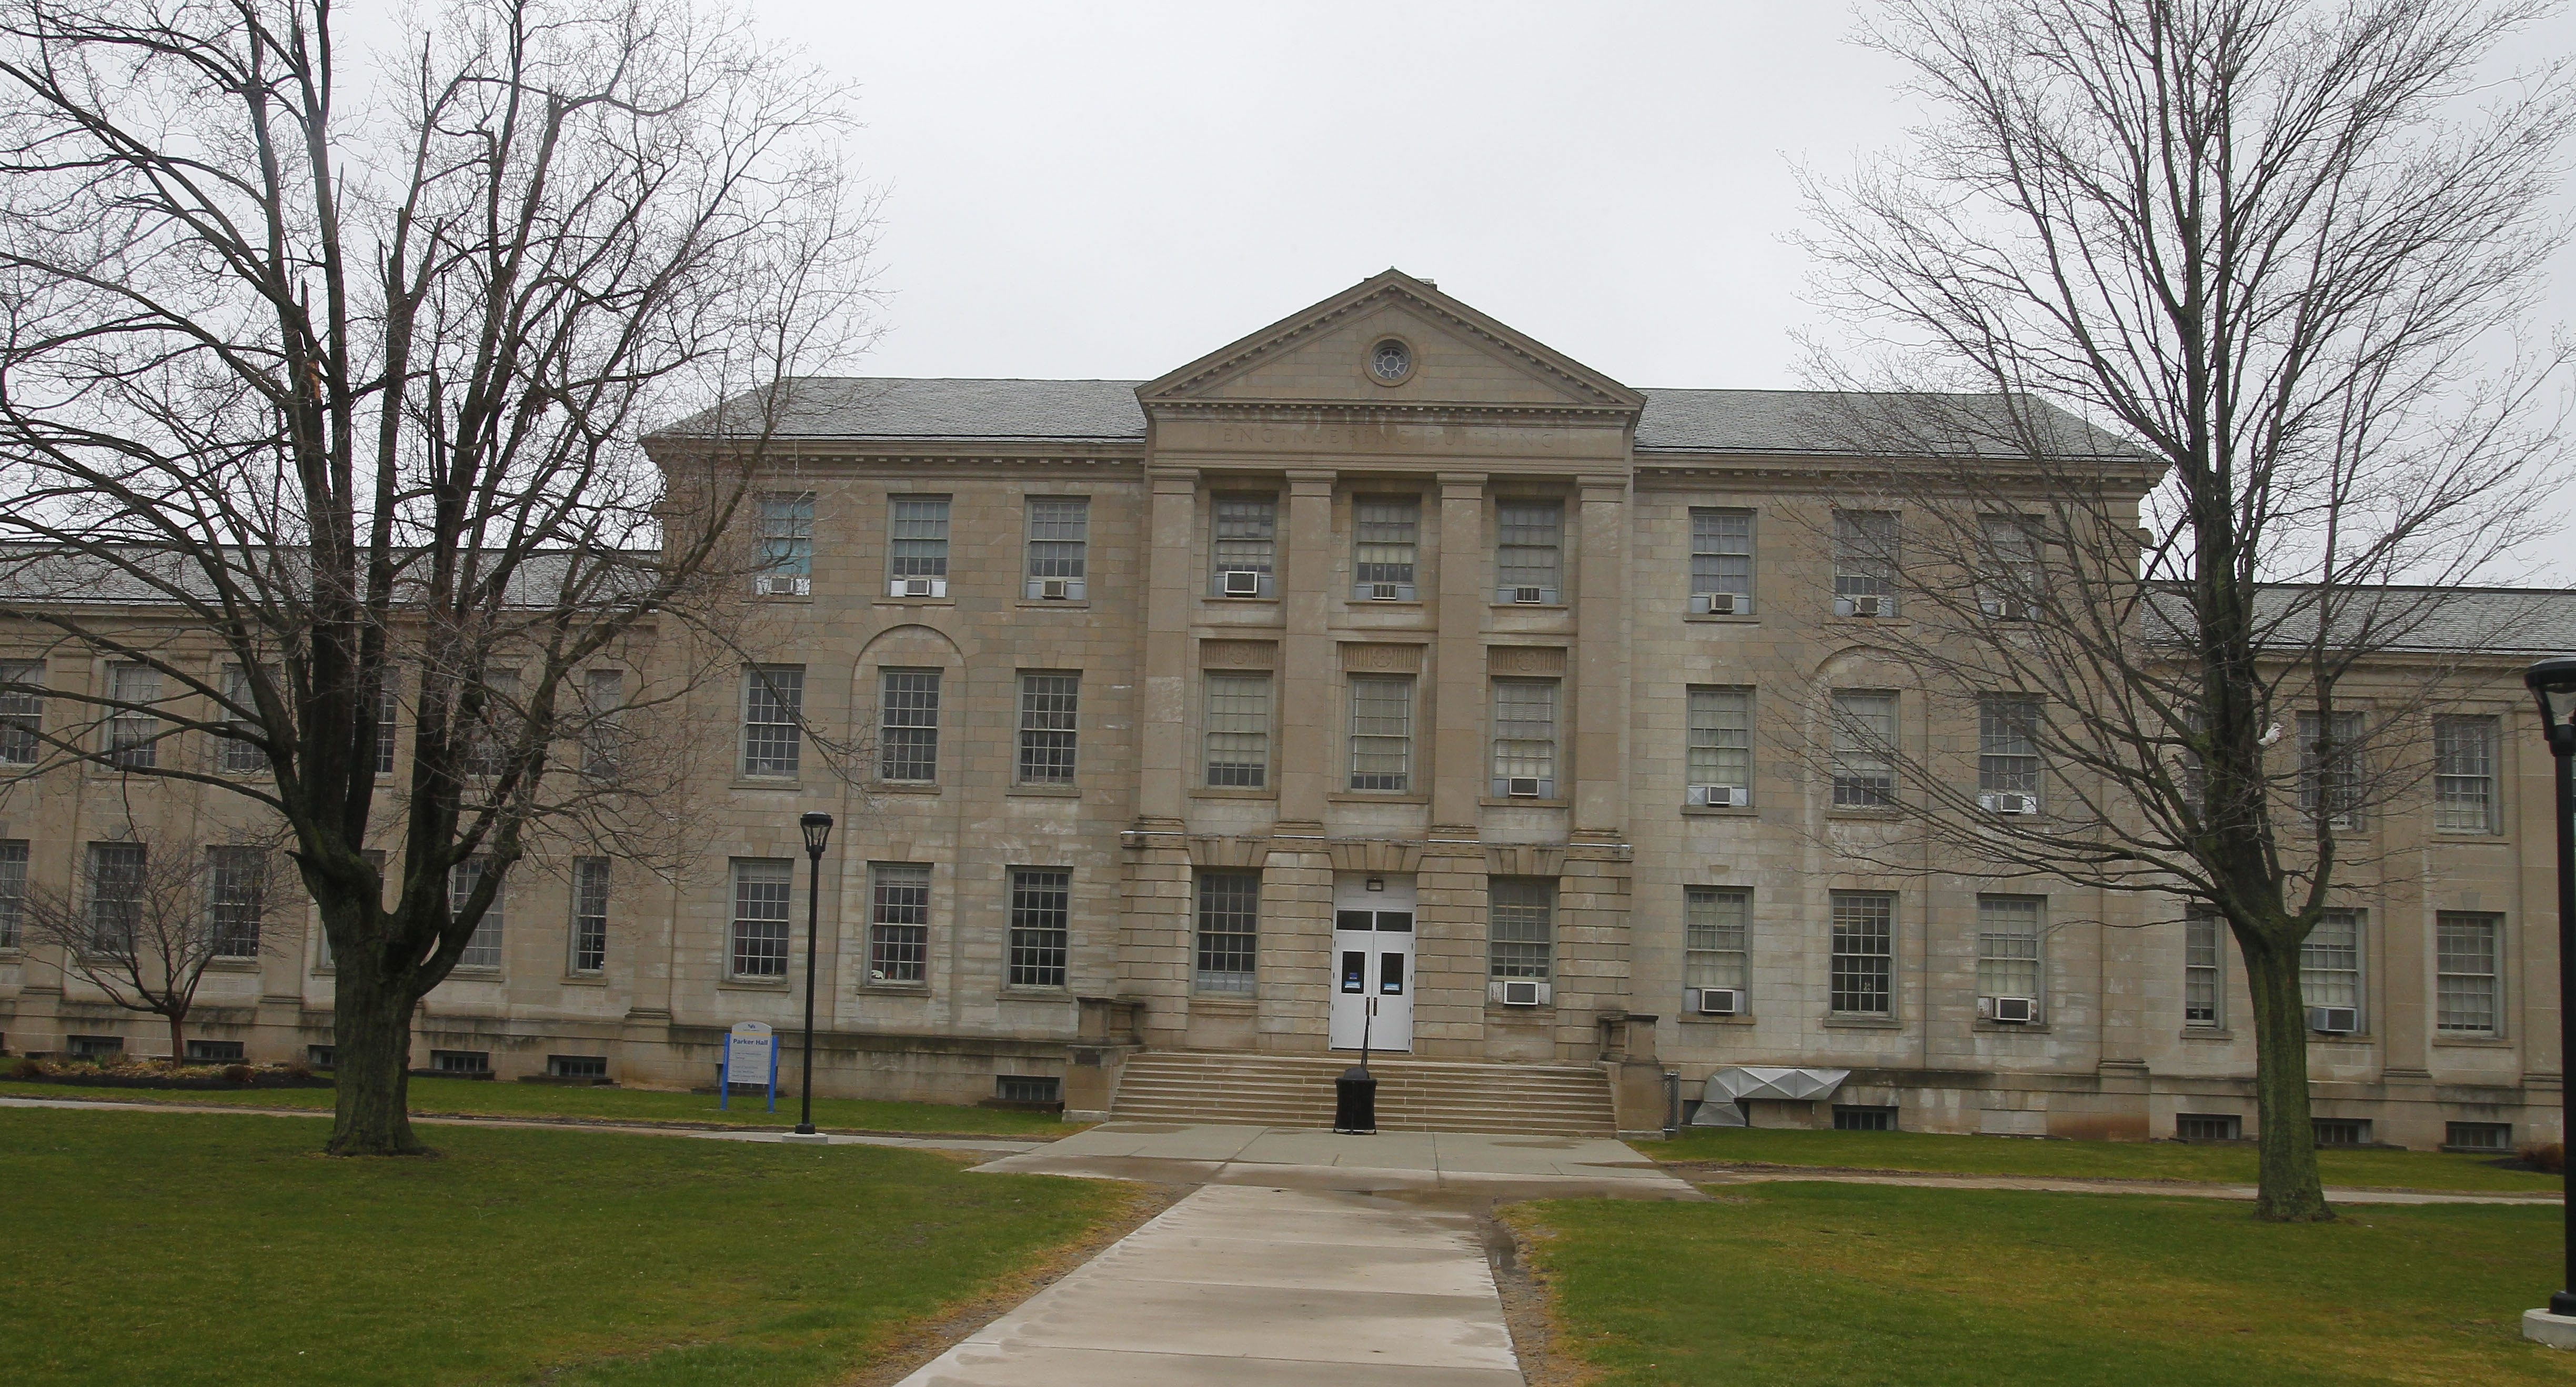 The cost of renovating of Parker Hall, above, and Townsend Hall, not pictured, and relocating some departments from the North Campus in Amherst was estimated at $91 million.